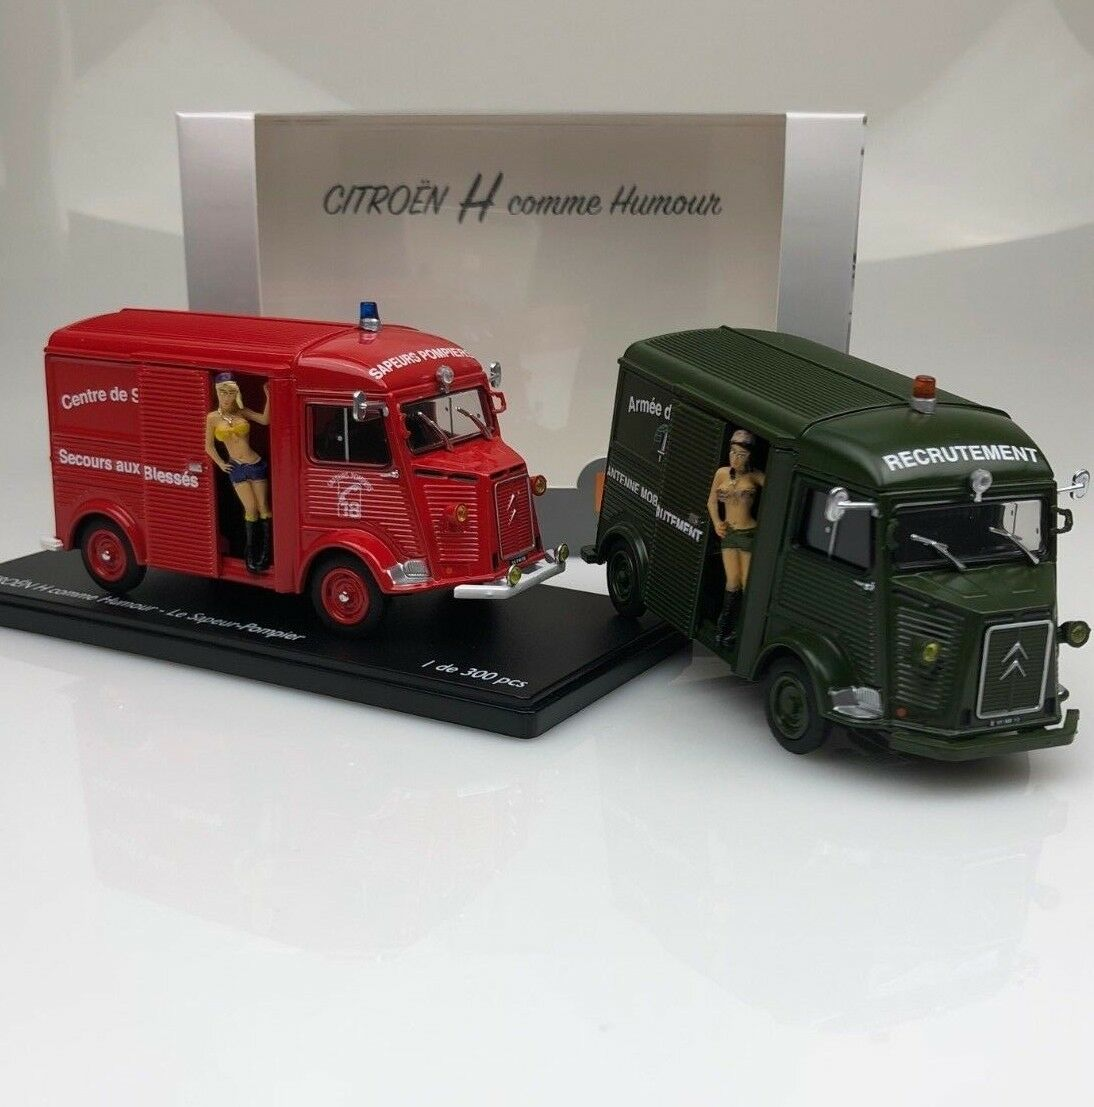 OFFER DUO Set of 2 Citroen HY series  H  as Humor Firefighter+Military 1.43 NB